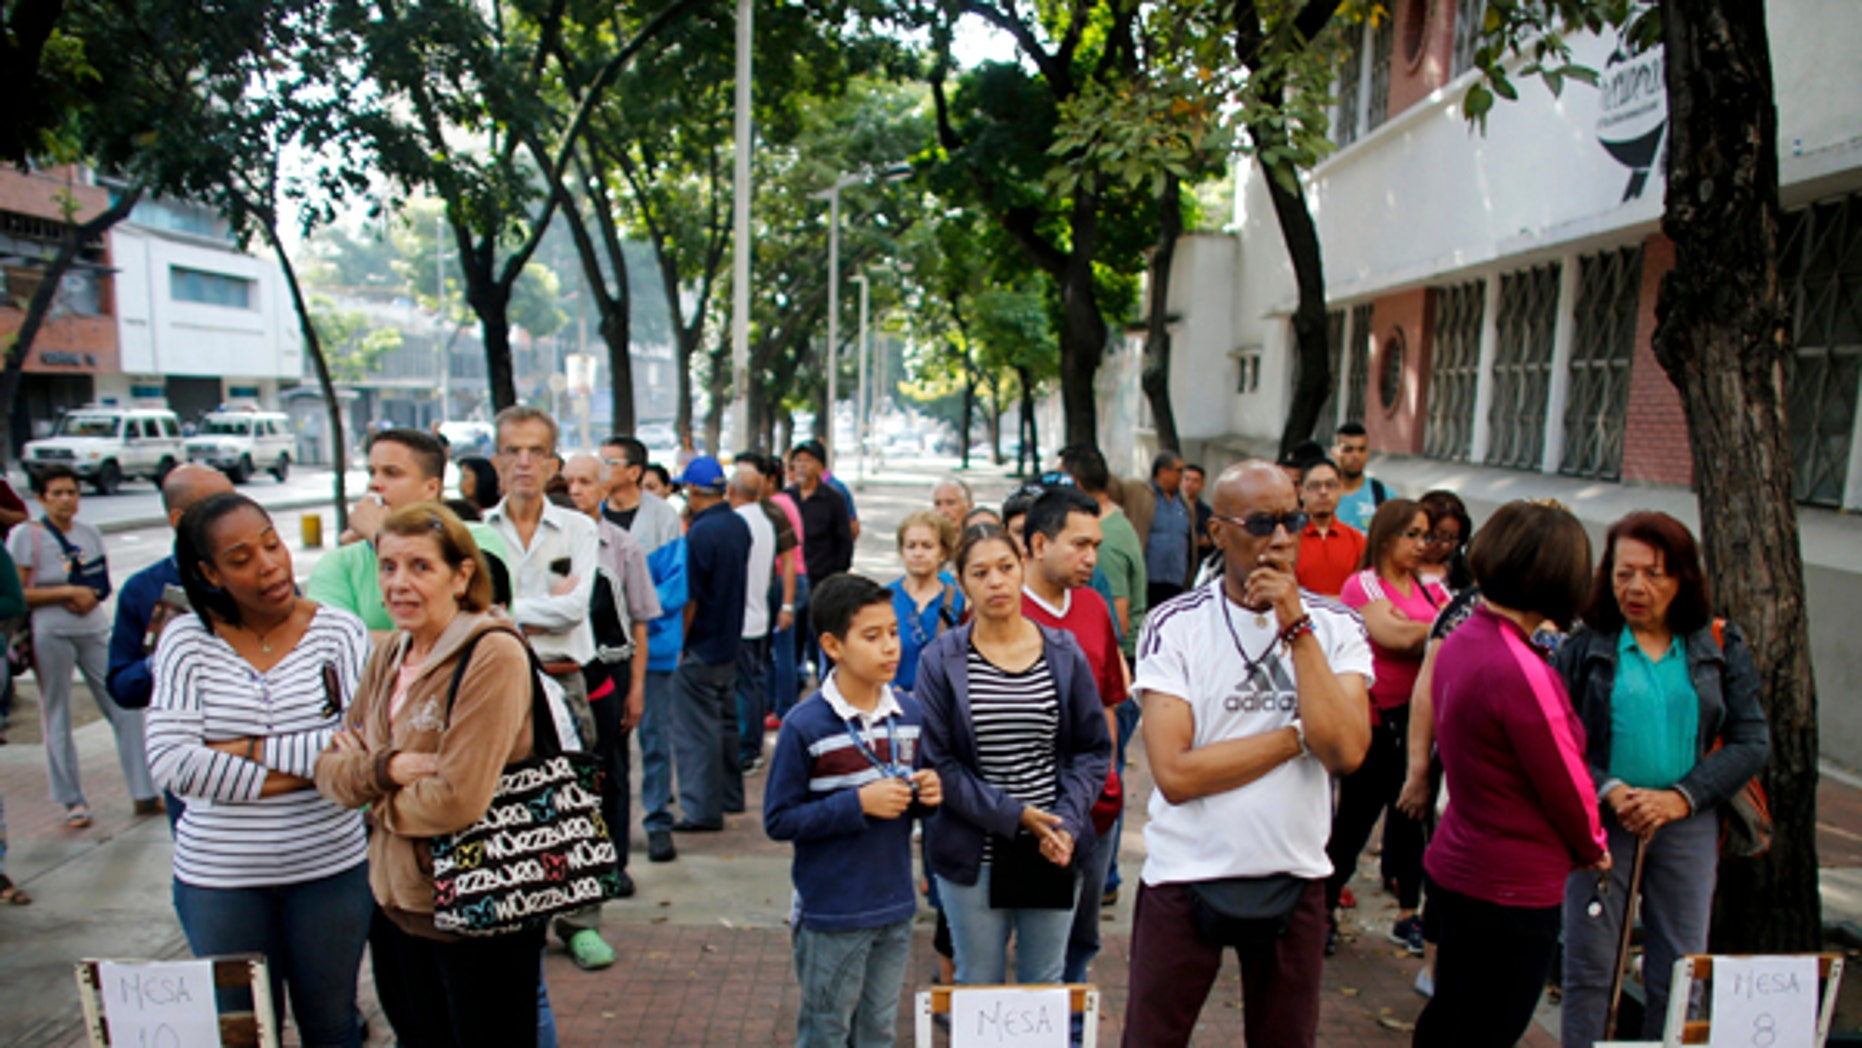 Voters wait outside of a poll station to enter to cast their ballot during the election for a constitutional assembly in Caracas, Venezuela, Sunday, July 30, 2017. President Nicolas Maduro asked for global acceptance on Sunday as he cast an unusual pre-dawn vote for an all-powerful constitutional assembly that his opponents fear he'll use to replace Venezuelan democracy with a single-party authoritarian system.